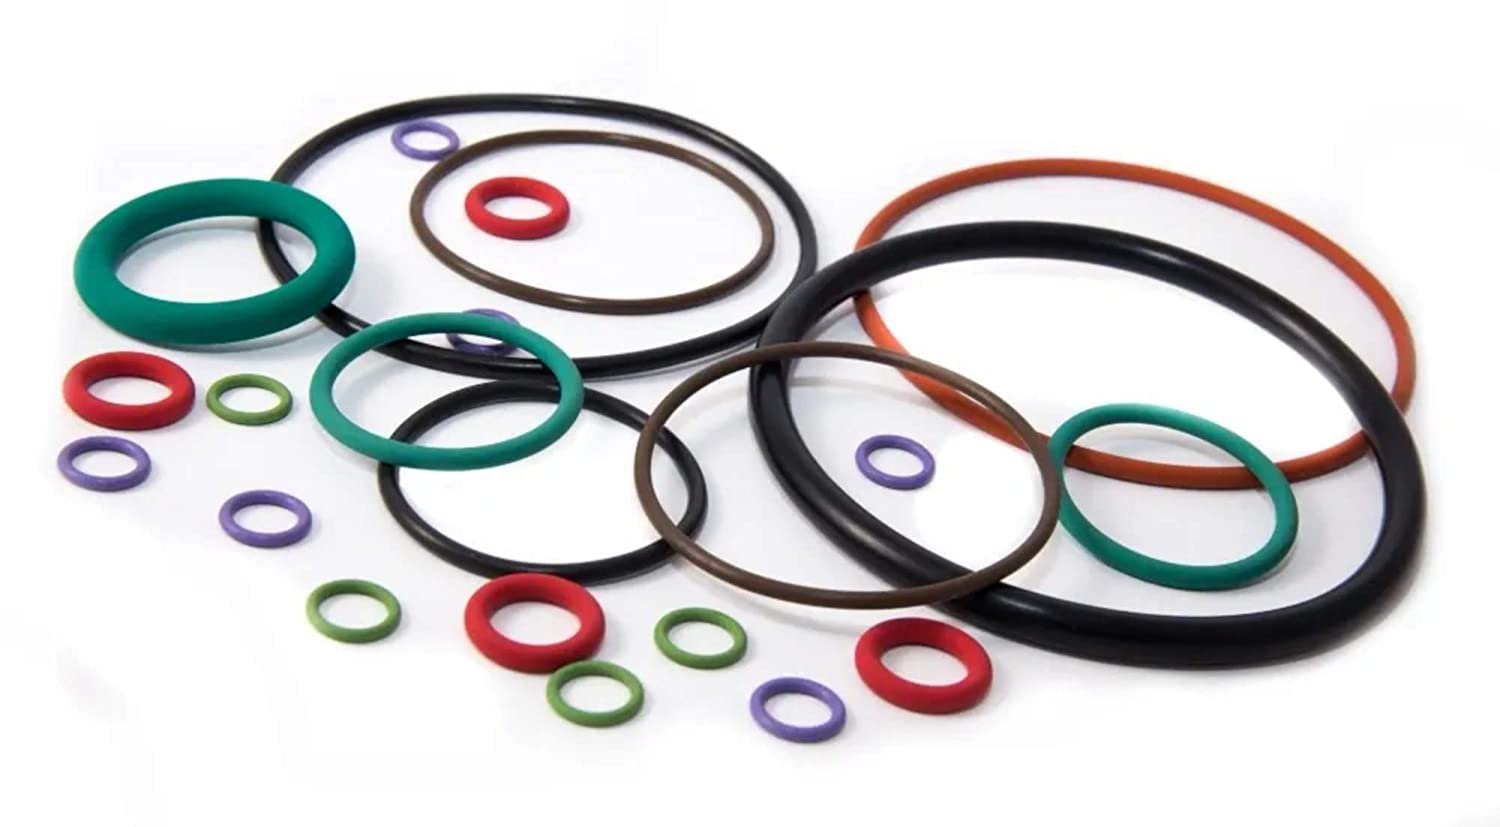 336 Buna//NBR Nitrile O-Ring 70A Durometer Black Sterling Seal and Supply 125 Pack